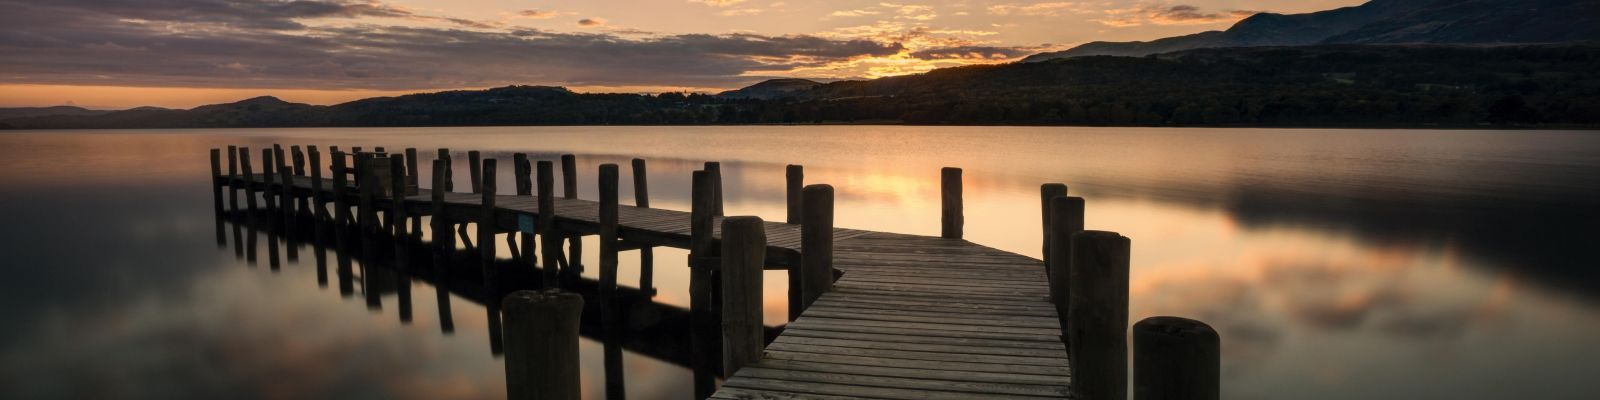 Dog Friendly Self Catering In West Wales